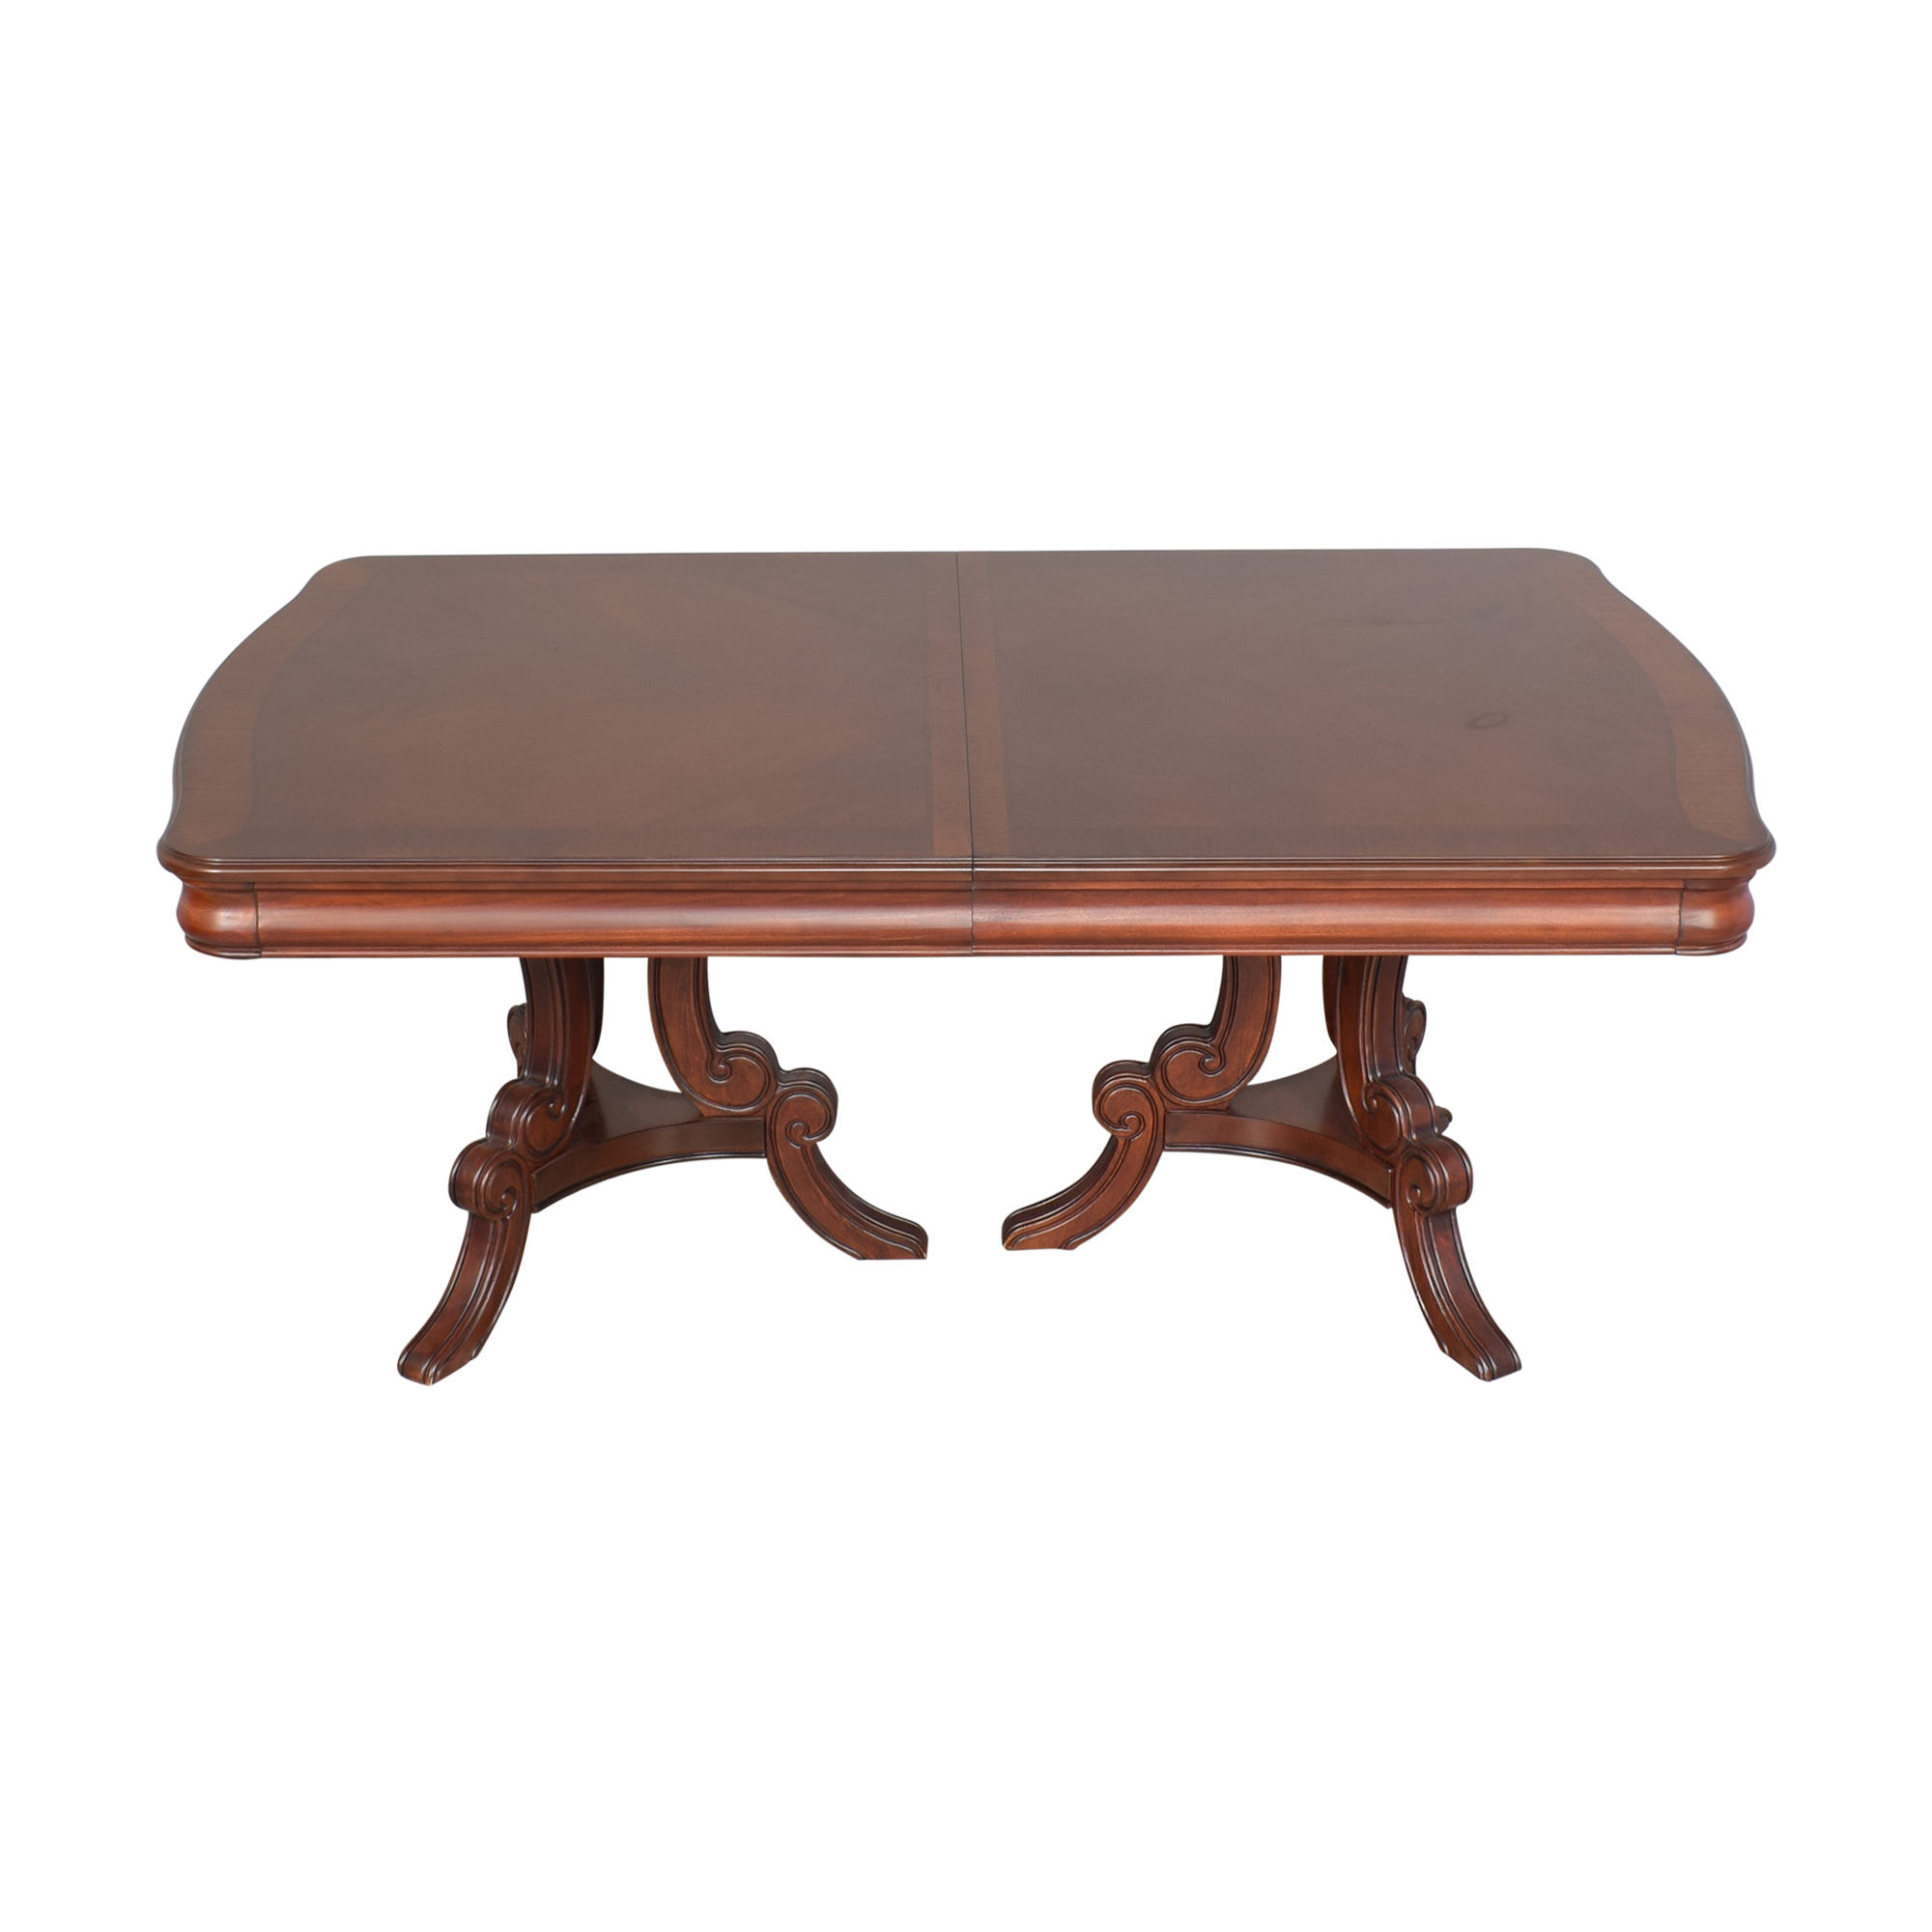 Raymour & Flanigan Extendable Dining Table sale